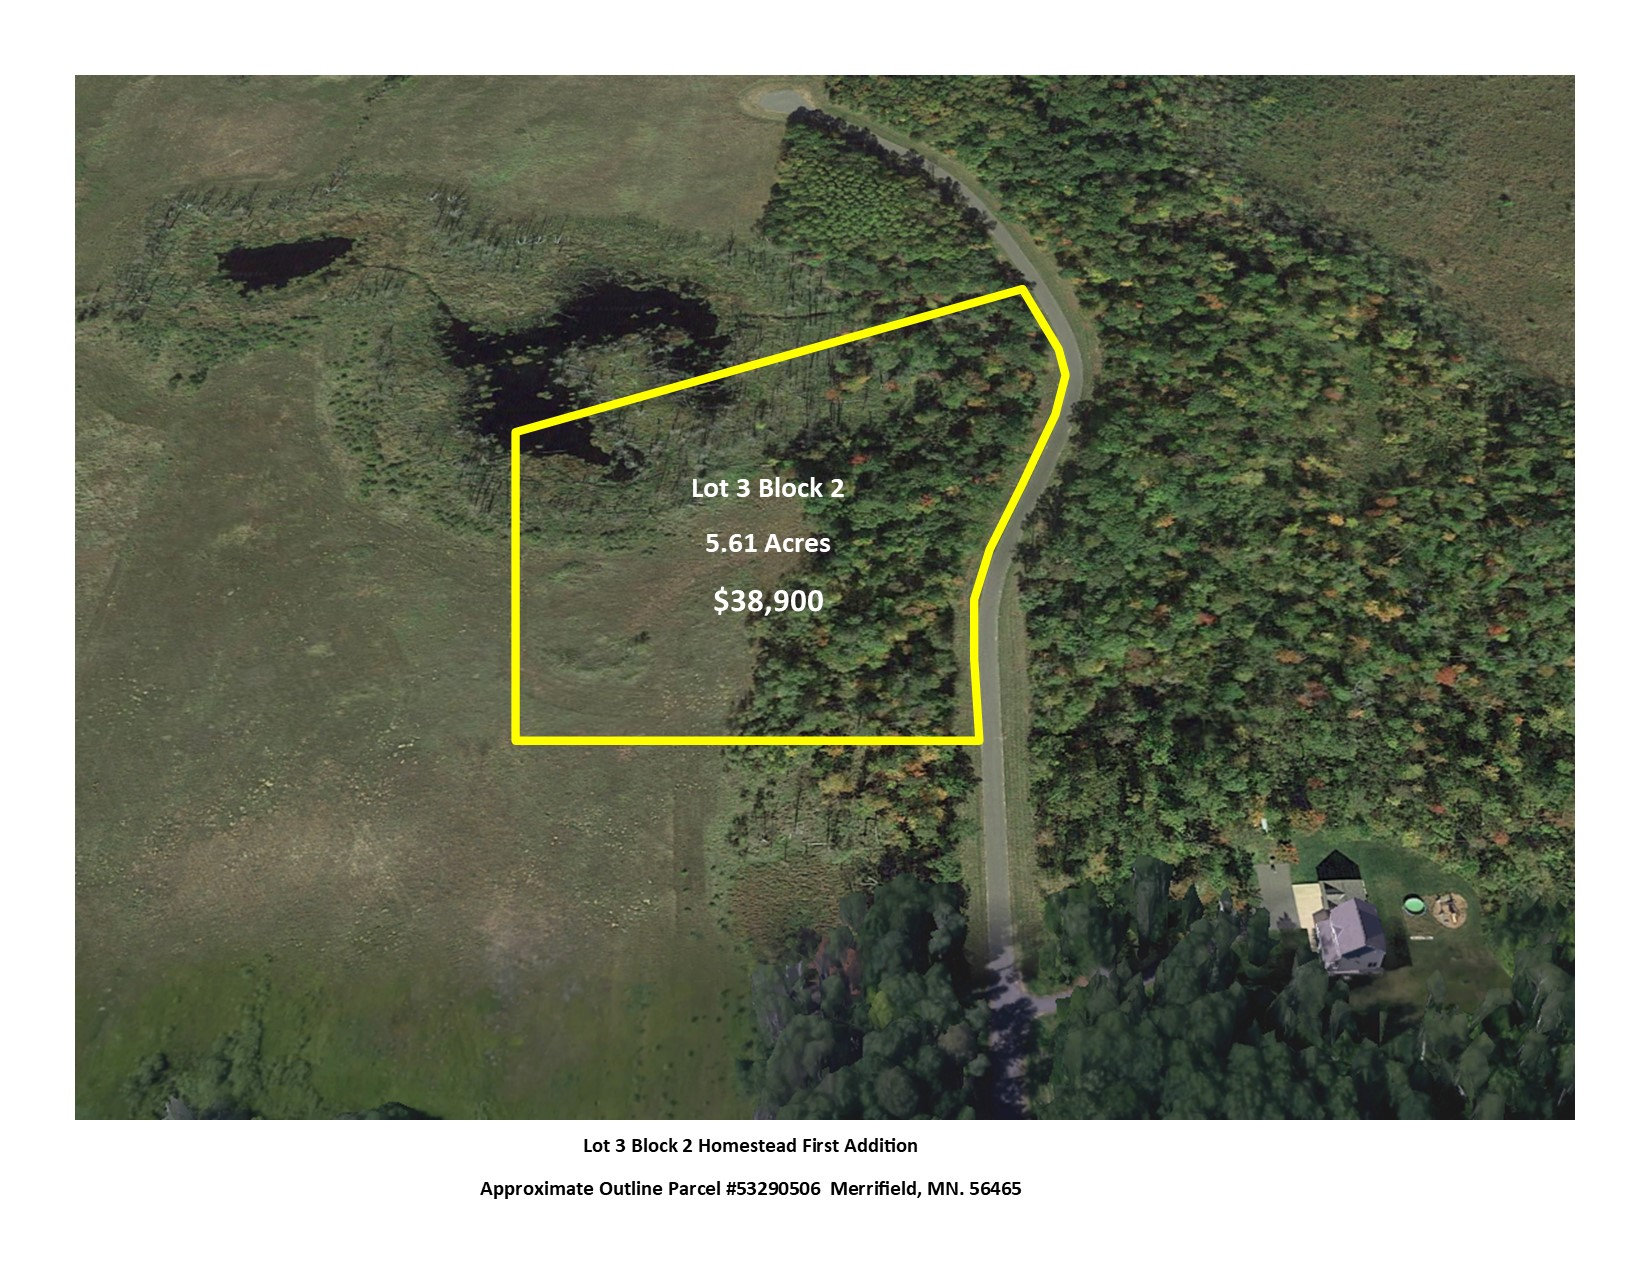 Lot 3 Block 2 Homestead First Addition, Merrifield, MN 56465